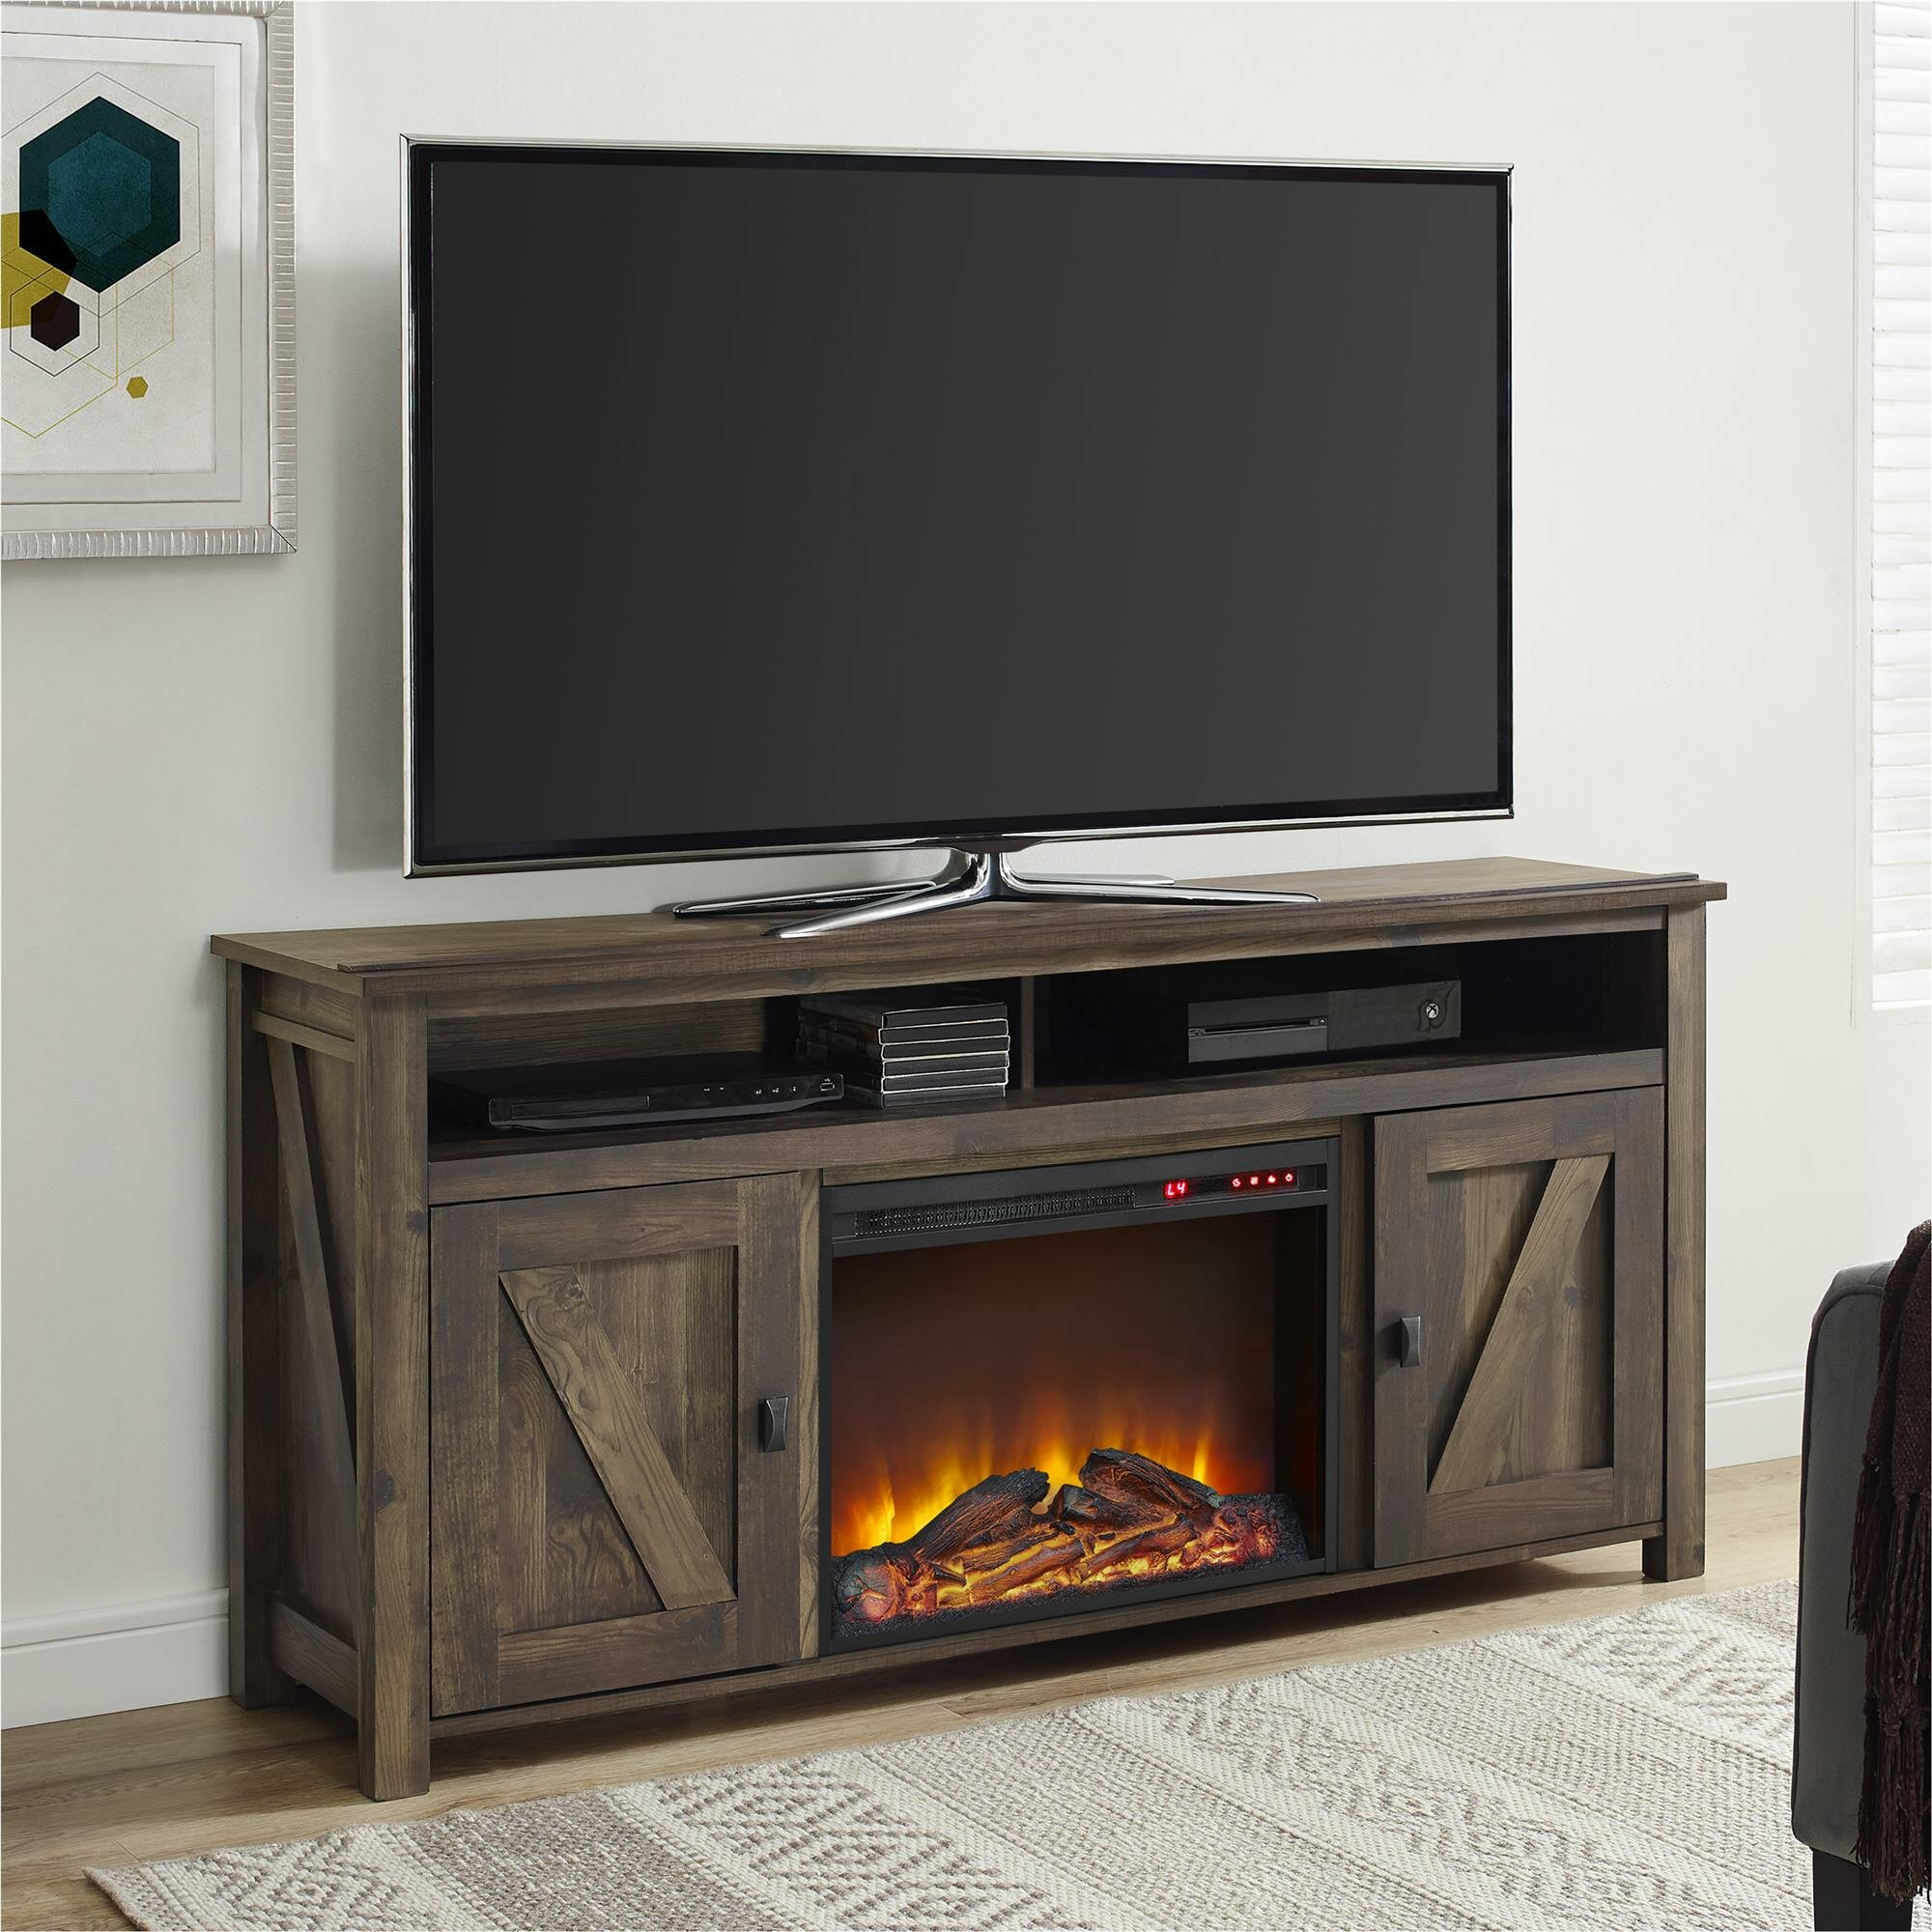 Remarkable Whittier Tv Stand For Tvs Up To 60 With Fireplace Download Free Architecture Designs Estepponolmadebymaigaardcom